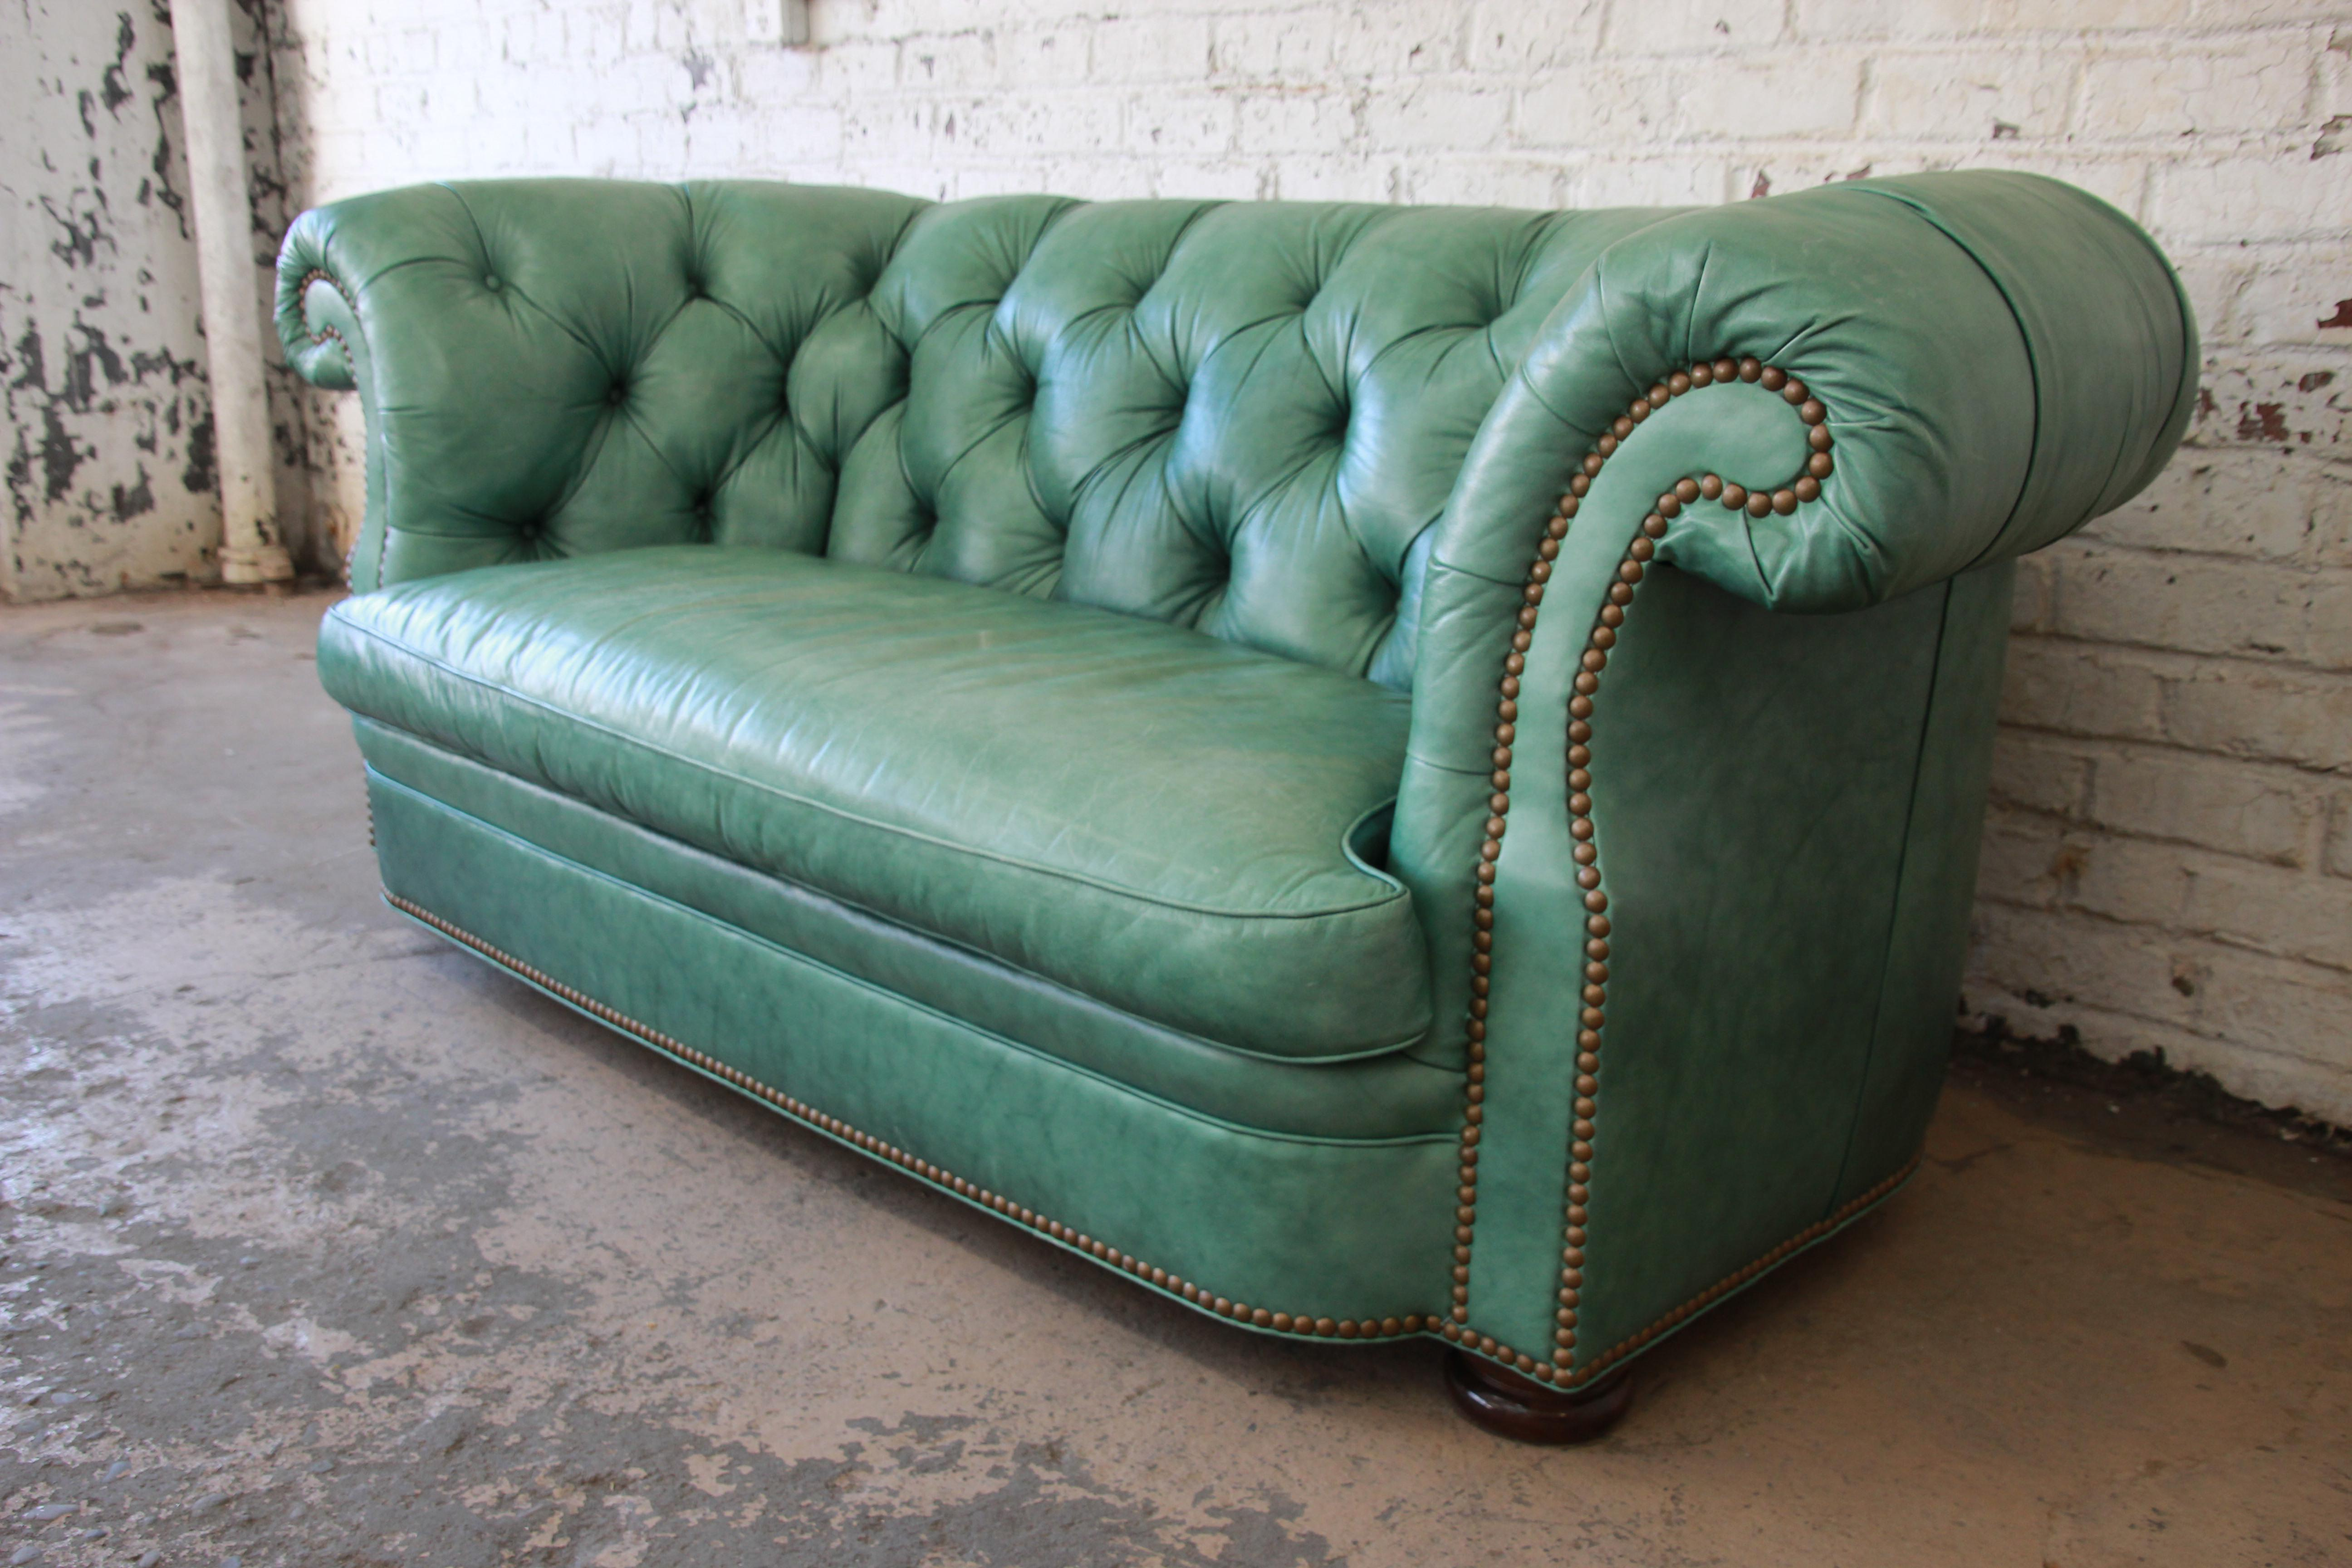 Mid 20th Century Vintage Teal Tufted Leather Chesterfield Sofa By Hancock U0026  Moore For Sale